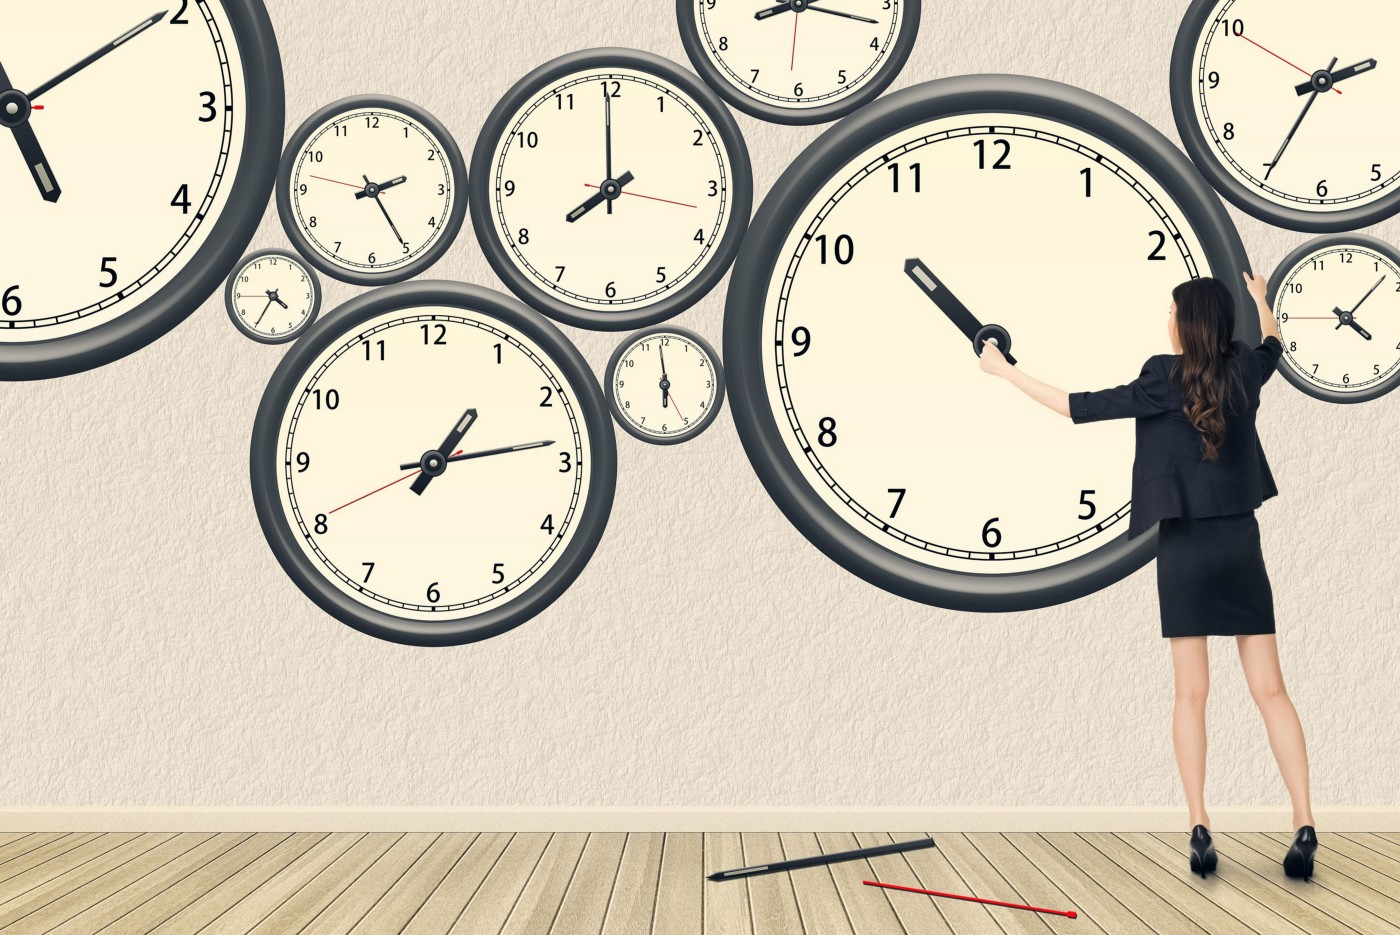 time management with reminder app Galarm